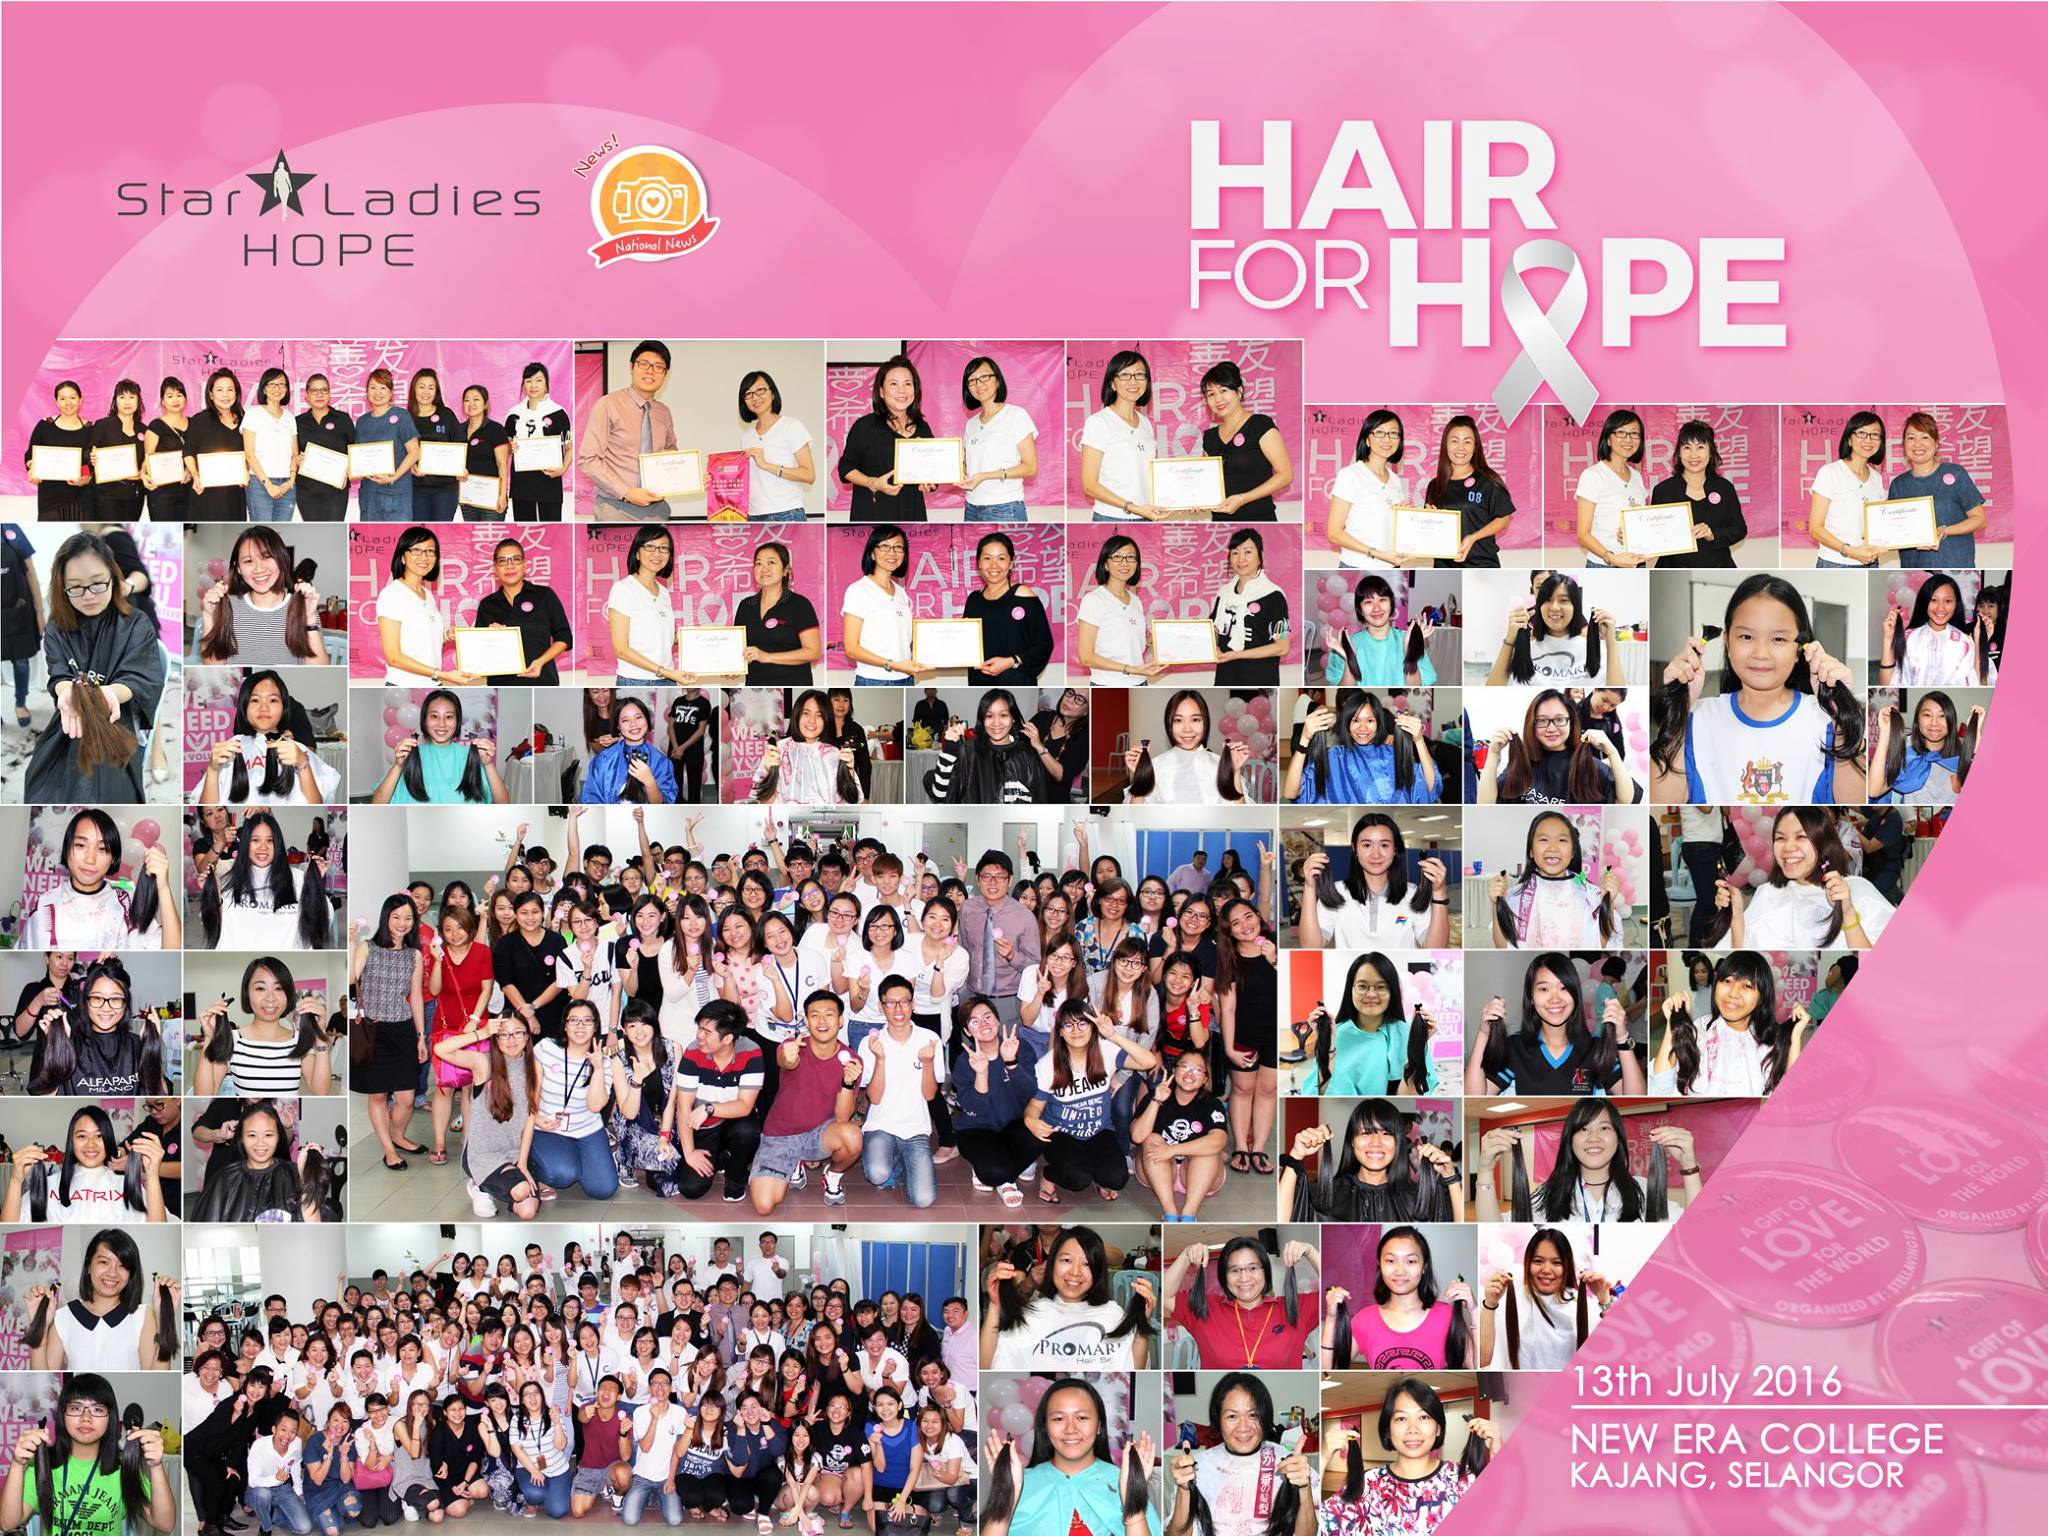 HAIR FOR HOPE . NEW ERA COLLEGE |    On 13/7, StarLadies Hope were here in Kajang New Era College. We feel so energetic stepping into the compound filled with youngsters who are friendly and lovely! Seeing so many female students donating their precious hair makes us feel proud of them! Your kind action today shine a hope to those in needs! Your action today will nurture the society is giving back to the needy ones. Your brave and courage today makes us determine to move forward delivering our mission and vision! Special thanks for the School Management of New Era College for collaborating with us in bringing this campaign into school, aside from creating awareness toward the society of underprivileged, too we create an awareness on health consciousness among youngsters . Mega thanks to all donors whom donate your precious hair, and not to forget all 10 hairstylist for your voluntary hair cut! We are truly blessed to have your care and love in Hair For Hope!   Special Thanks to 特别感谢:  1. New Era College Kajang and the students and teachers 2. Ann Quah Geok Choo 3. Tai May Loo 4. Highset Unisex Hair Saloon 5. Evon Hair & Beauty House 6. MG Lee 7. Angie Lee 8. Teak Choon Lan 9. May Chow Yit Moi 10. Vinnie Lee  #starladieshope   #neweracollege   #hairforhope  #utusanmalaysia   #sinchewdaily   #chinapress